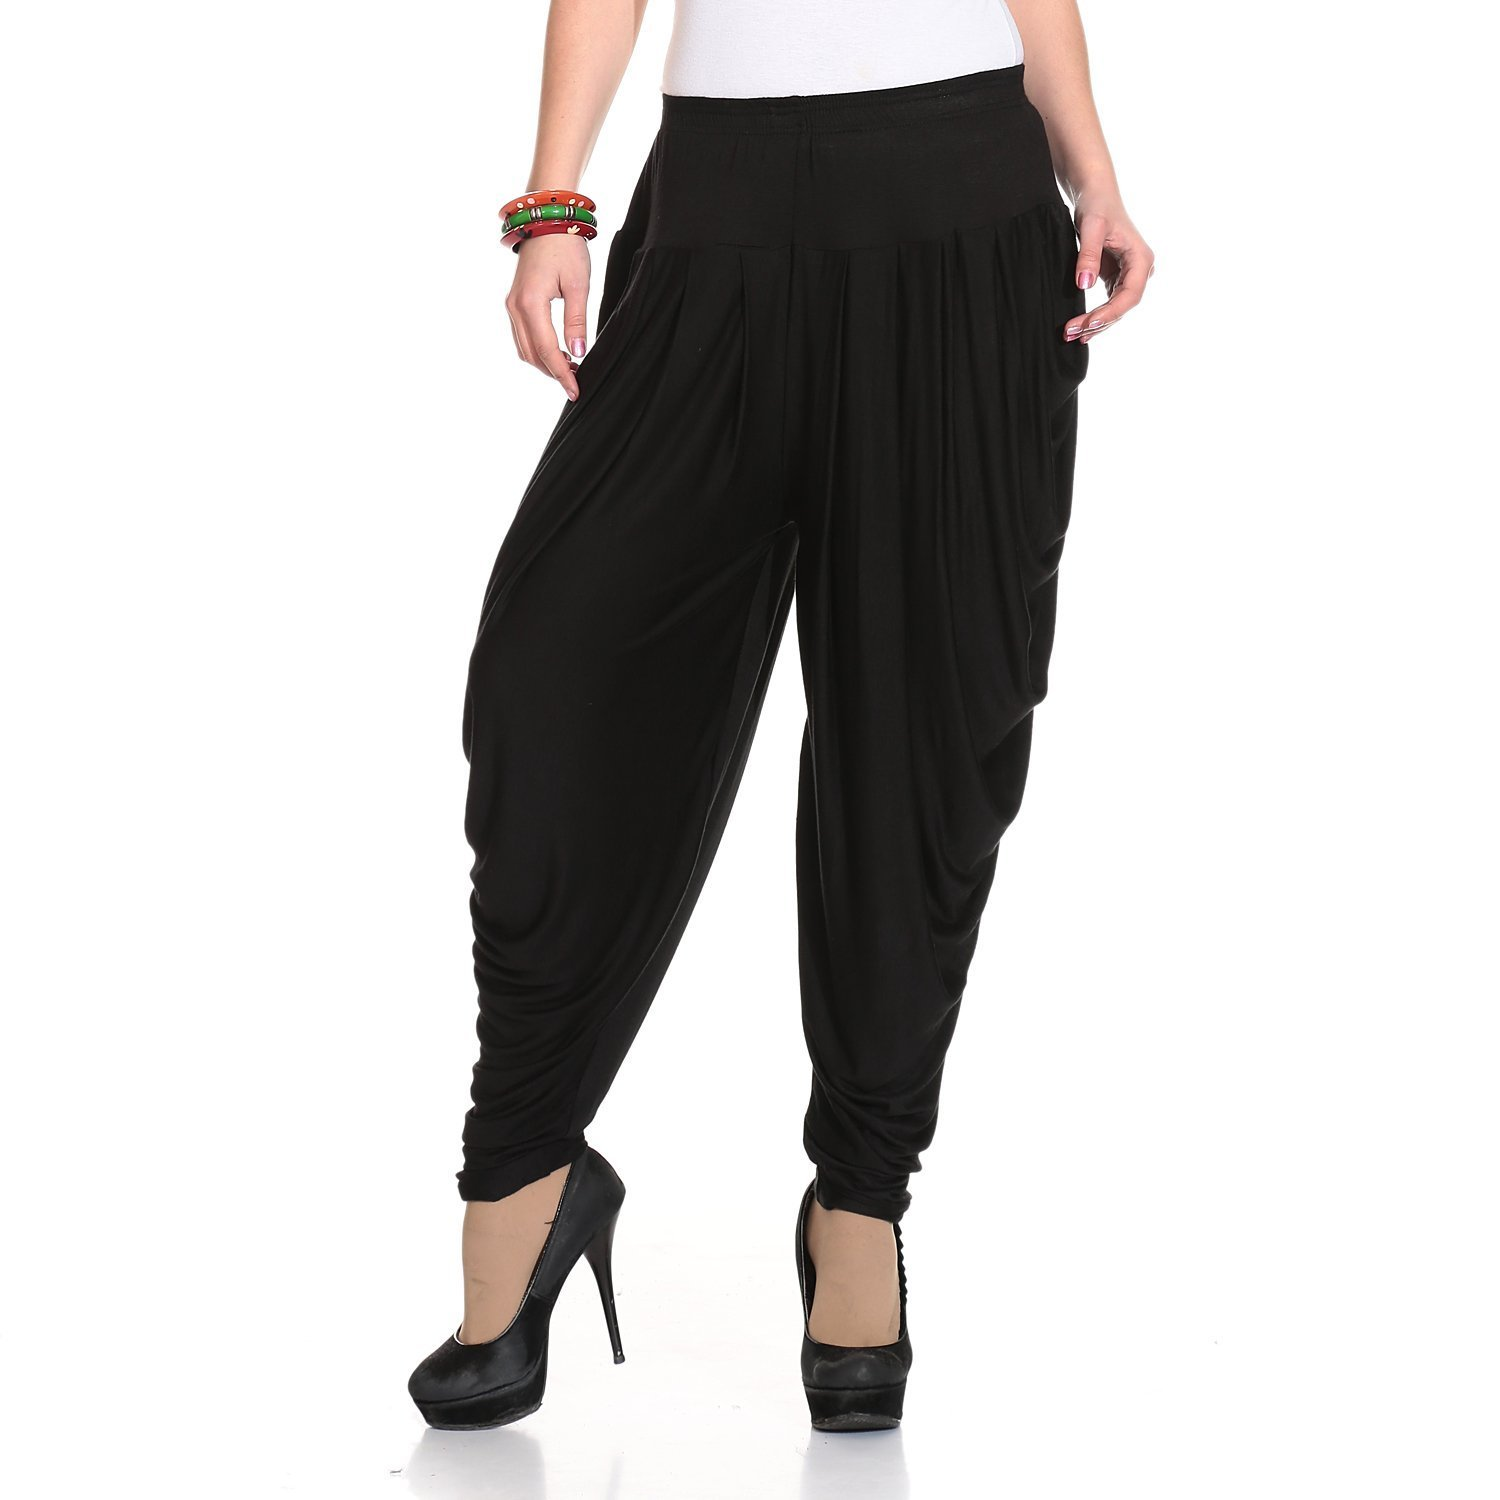 Flat 50% Off On Top Brands In Clothing By Amazon | Legis Lycra Dhoti for Women @ Rs.399